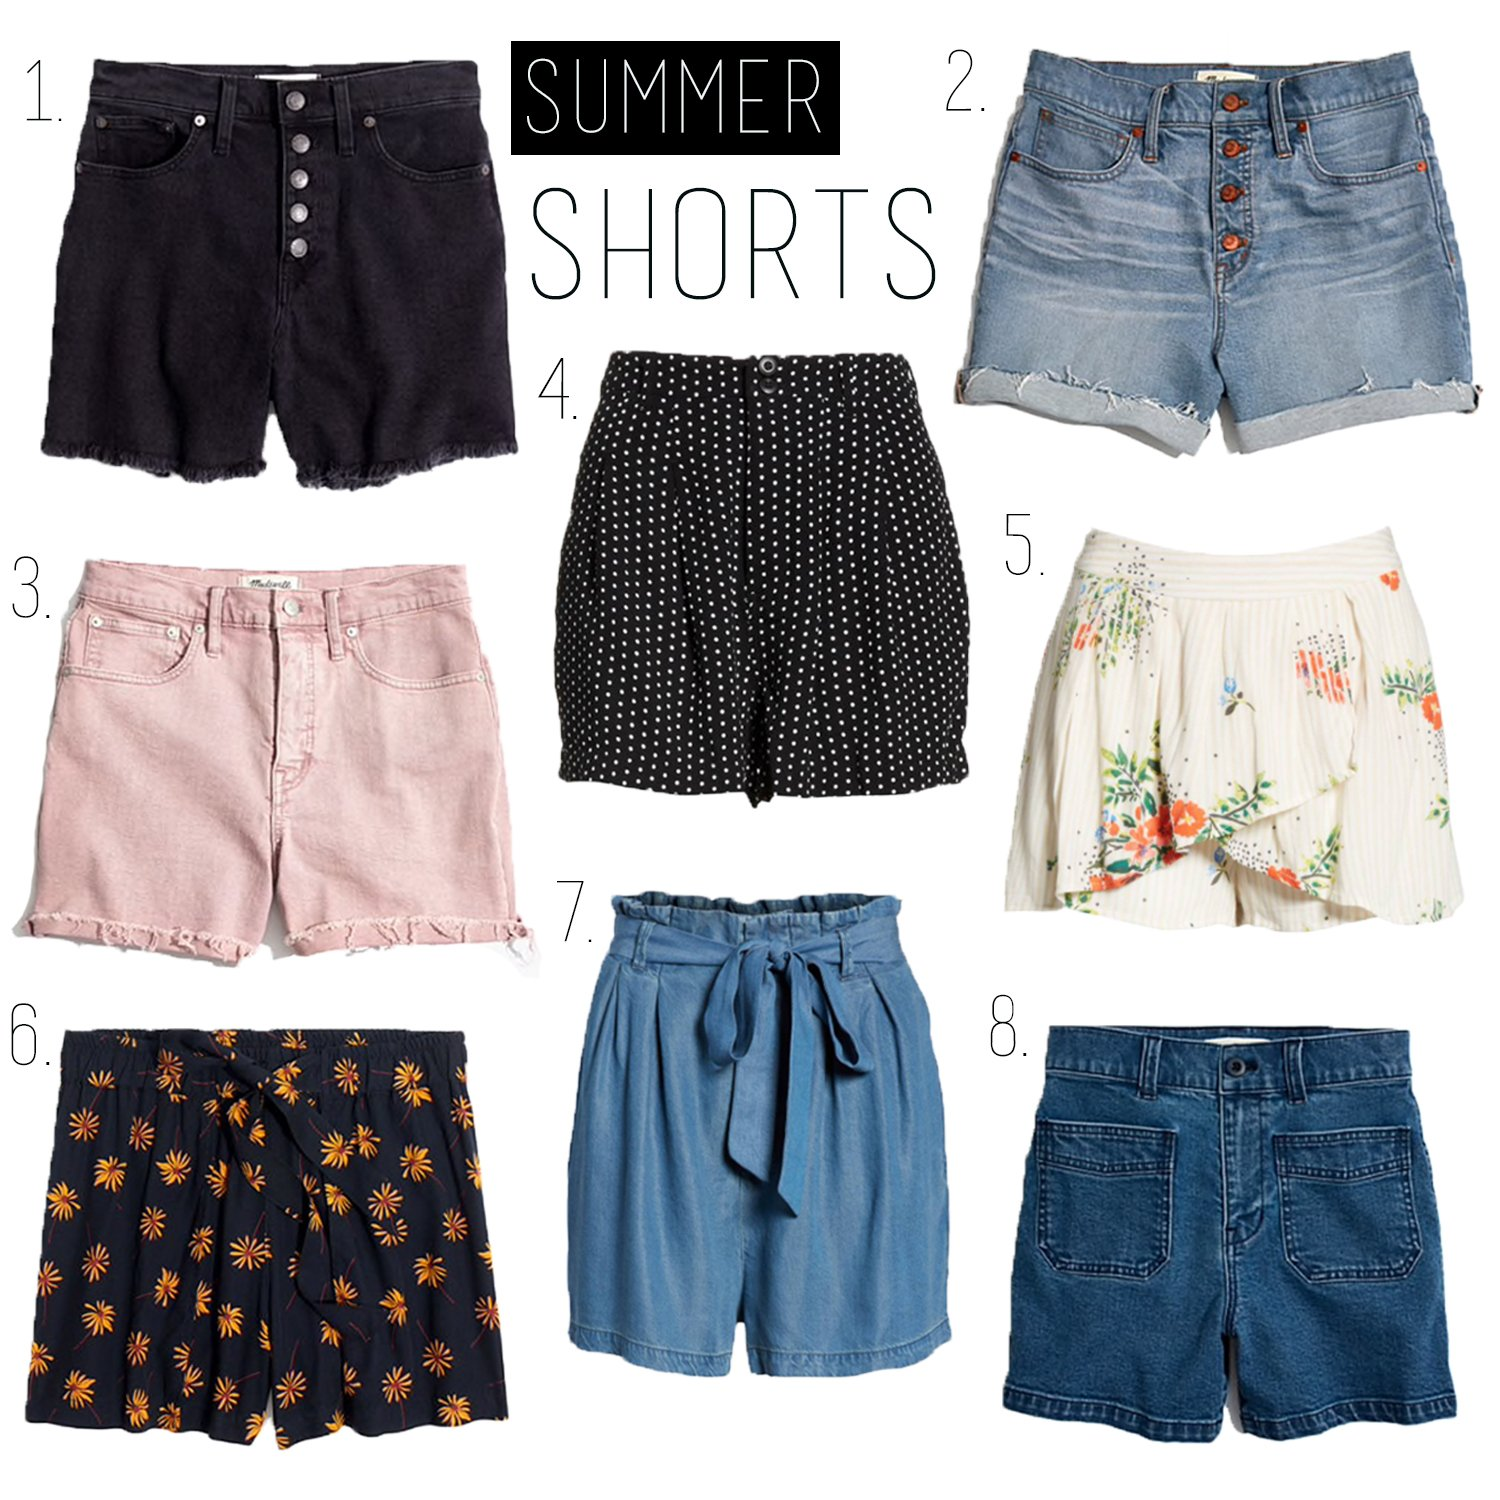 Summer shorts guide